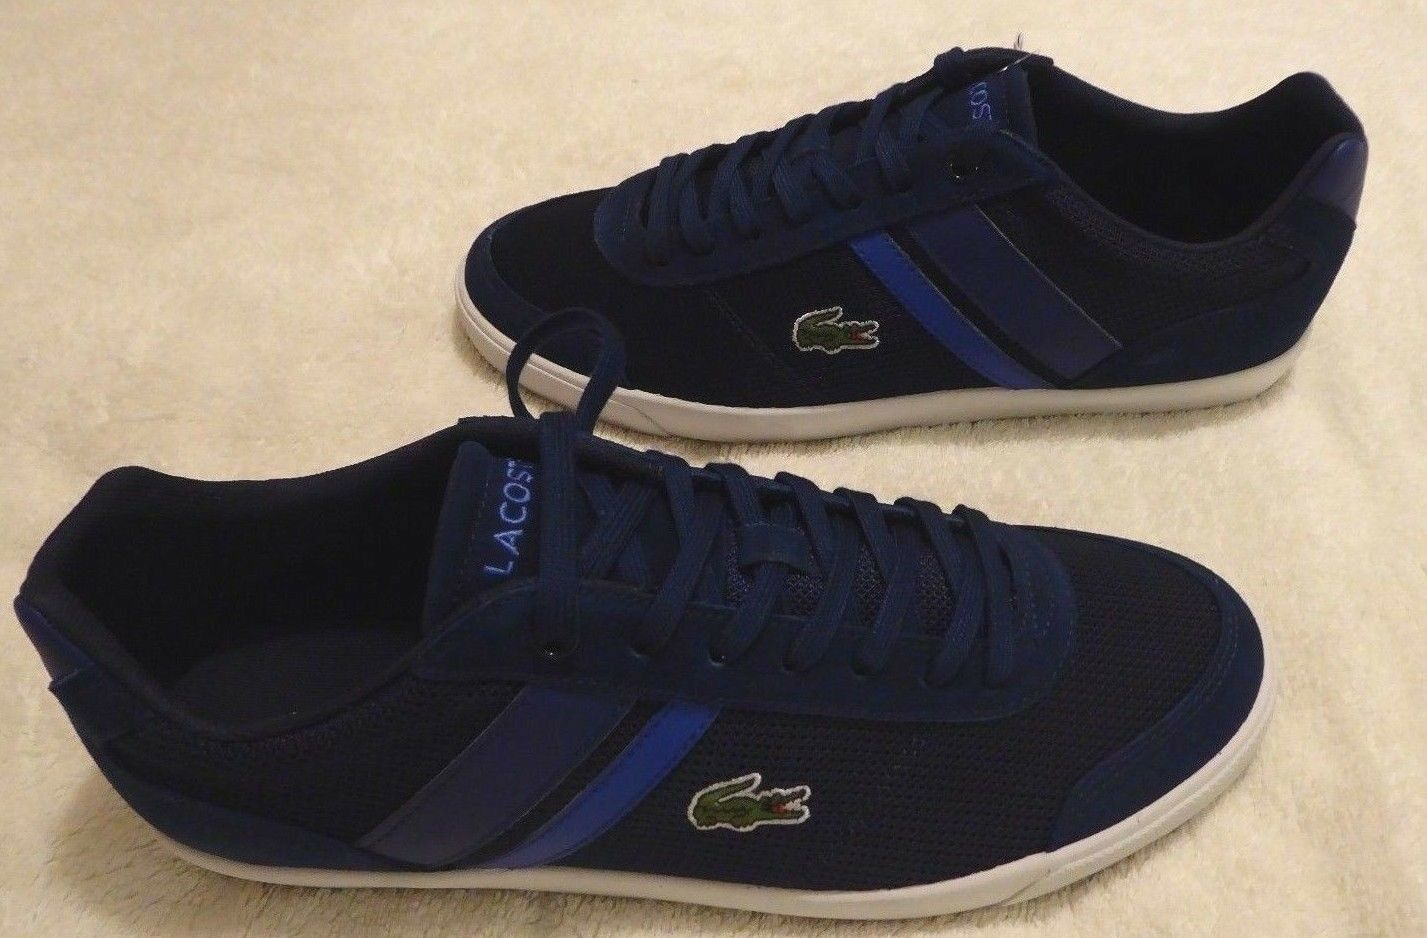 NEW BOXED MEN'S NAVY LACOSTE COMBA TRAINERS SHOES - SIZE 7 -  & FREE POST